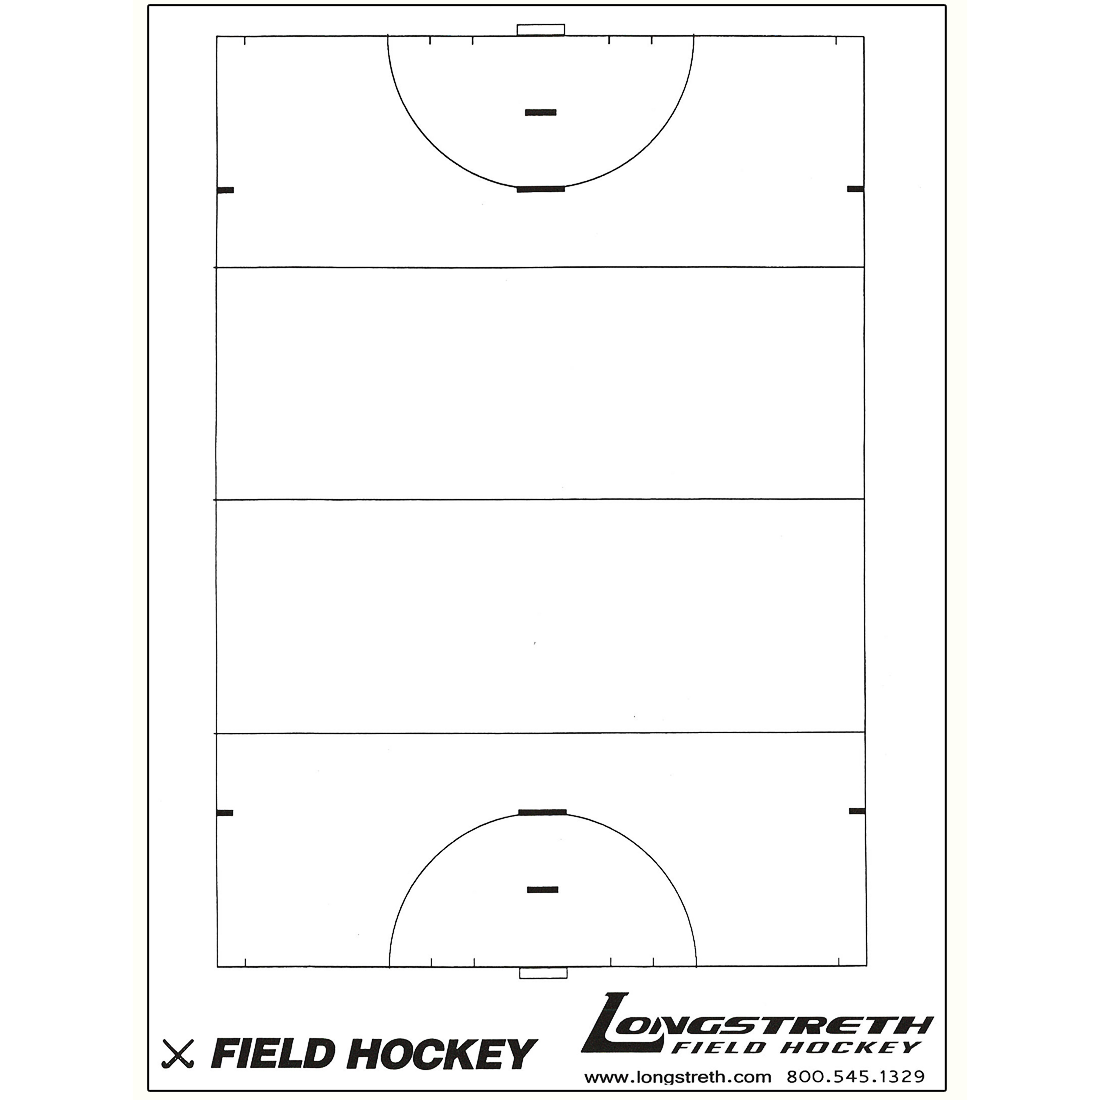 field hockey diagram tablet   longstreth comfield hockey diagram tablet